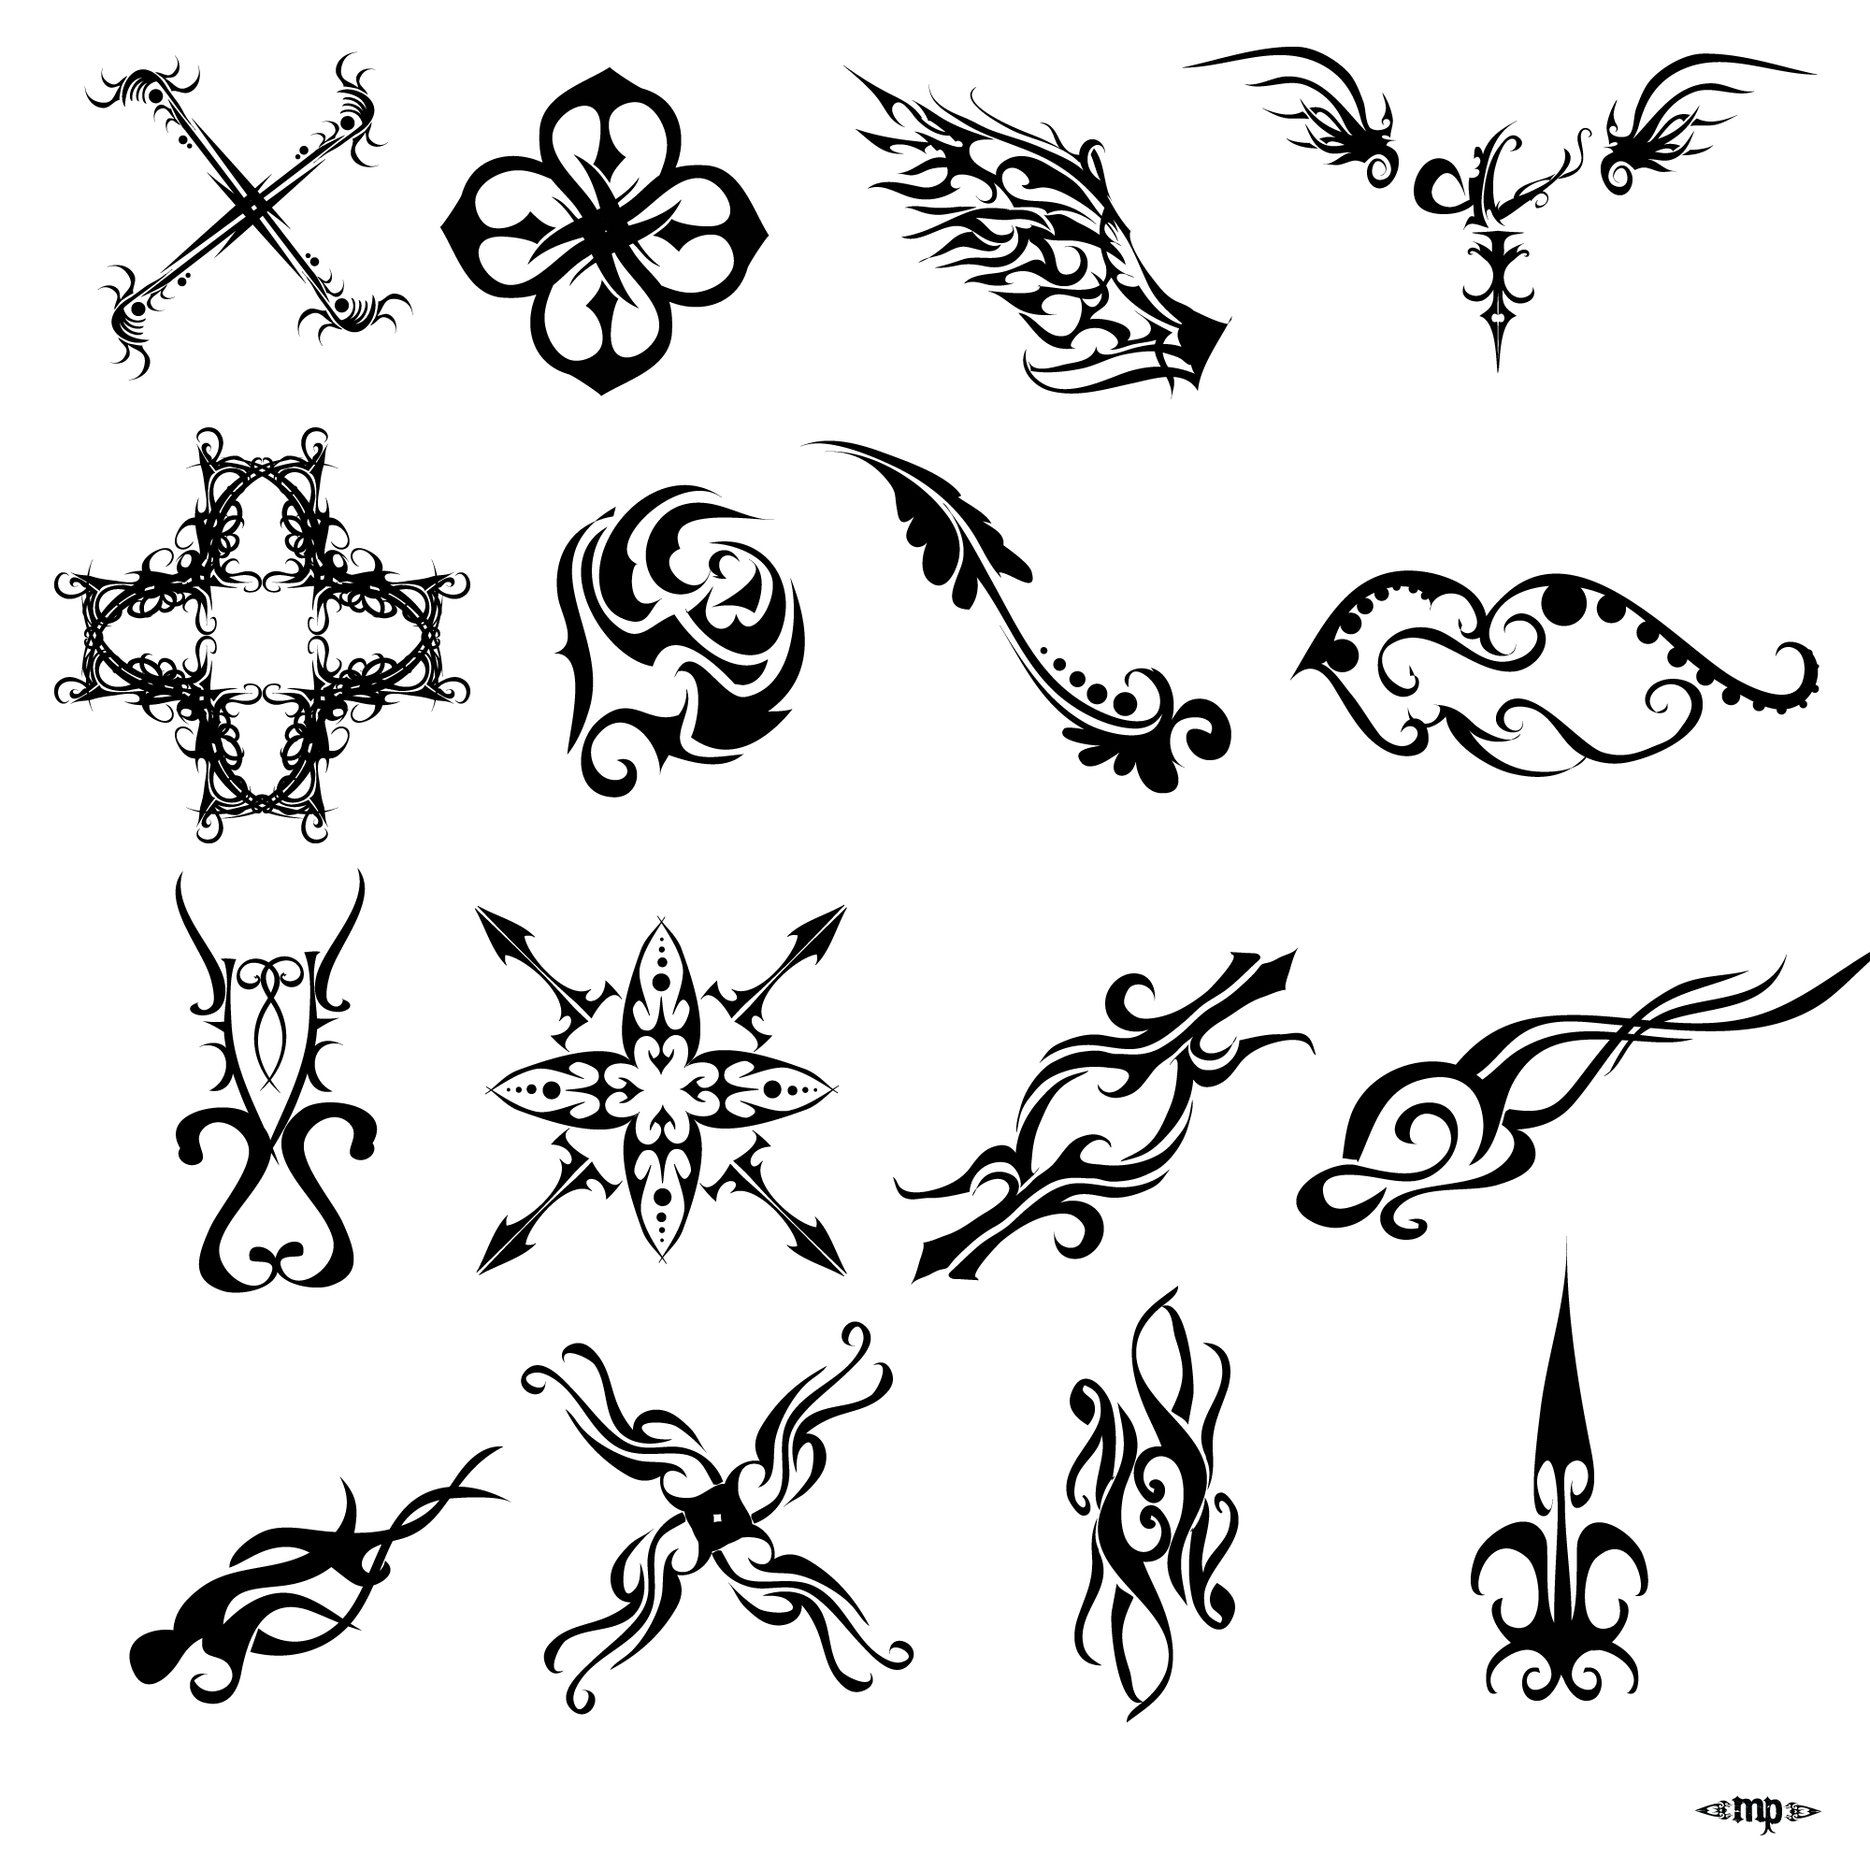 Some Tattoo Design Iii By Mptribe Simple Tattoo Designs Simple Tattoos Cool Simple Tattoos